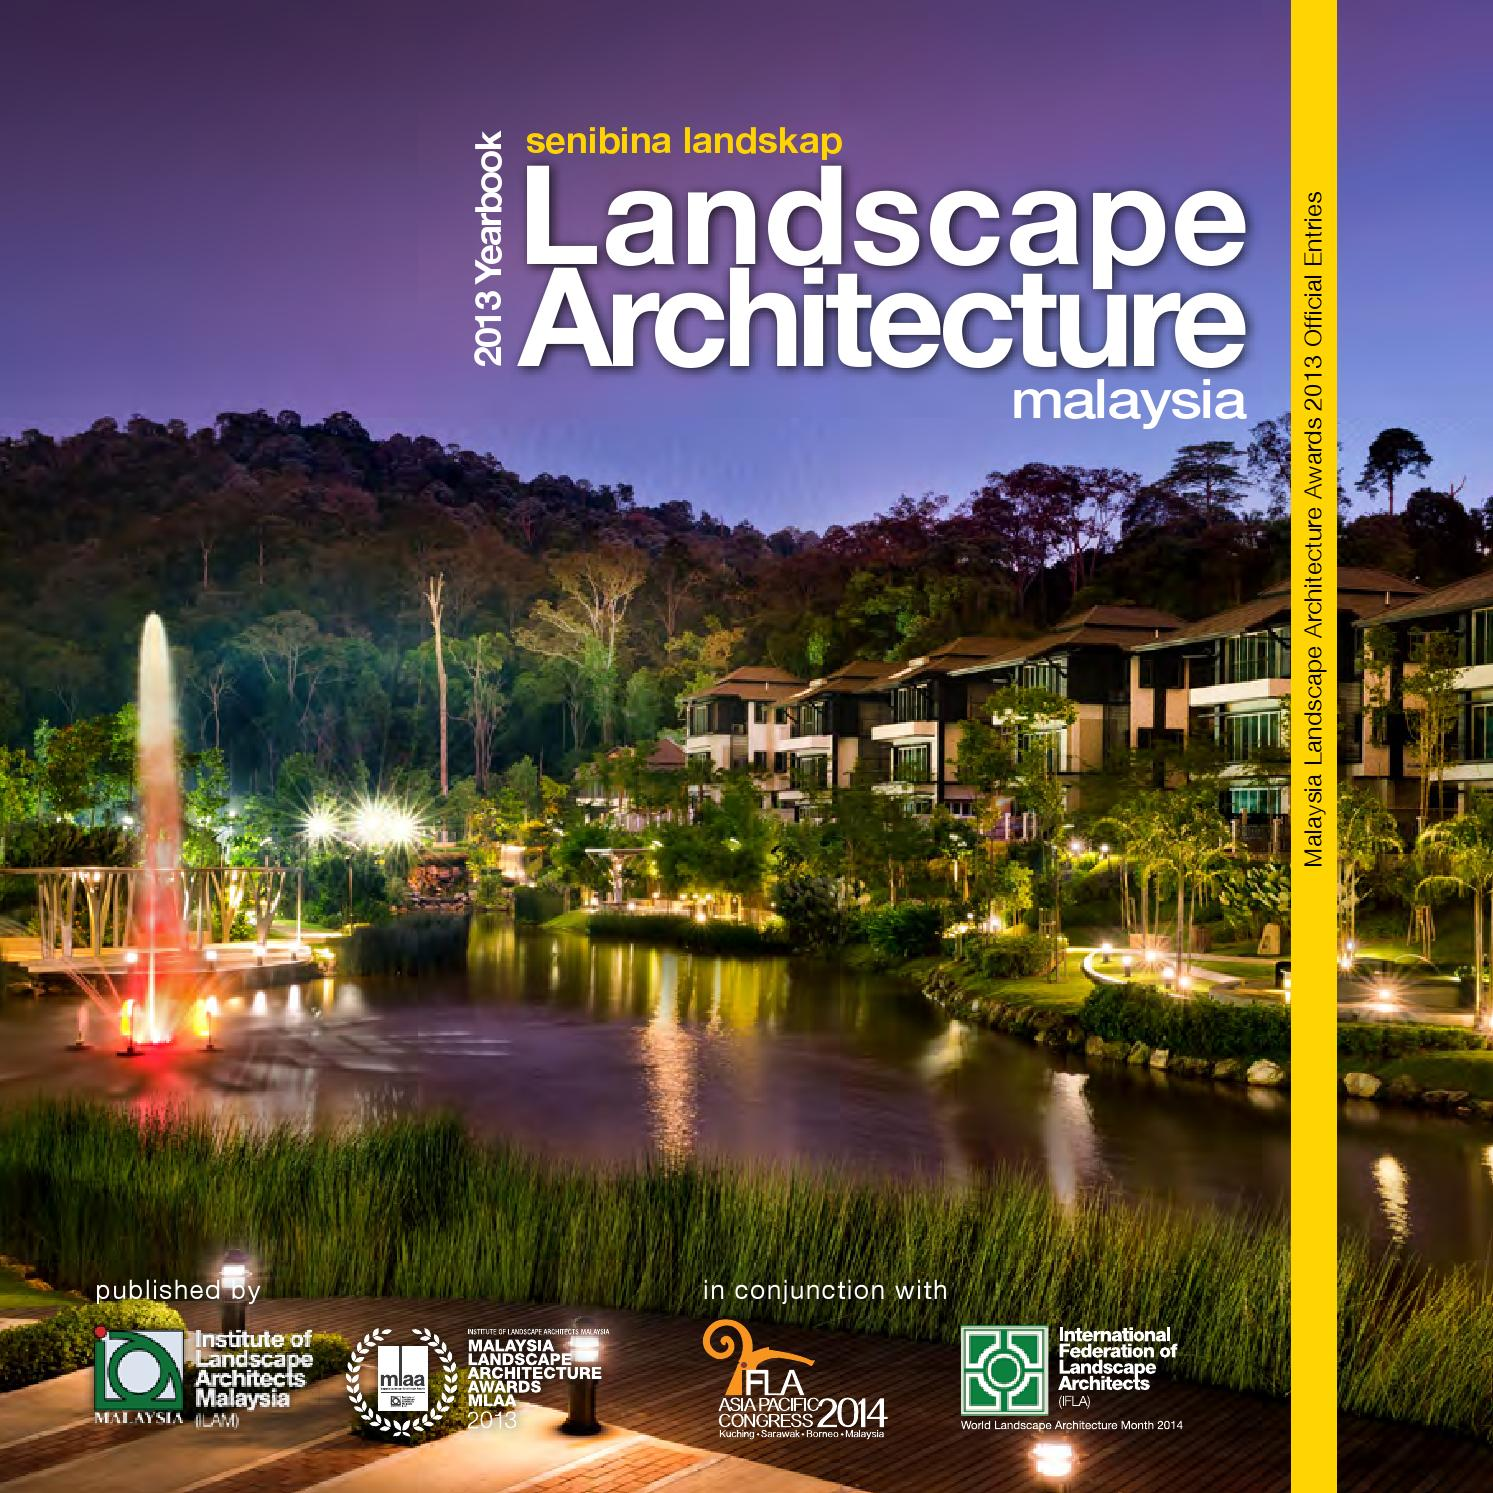 About Malaysia: Malaysia Landscape Architecture Yearbook 2013 By Charles